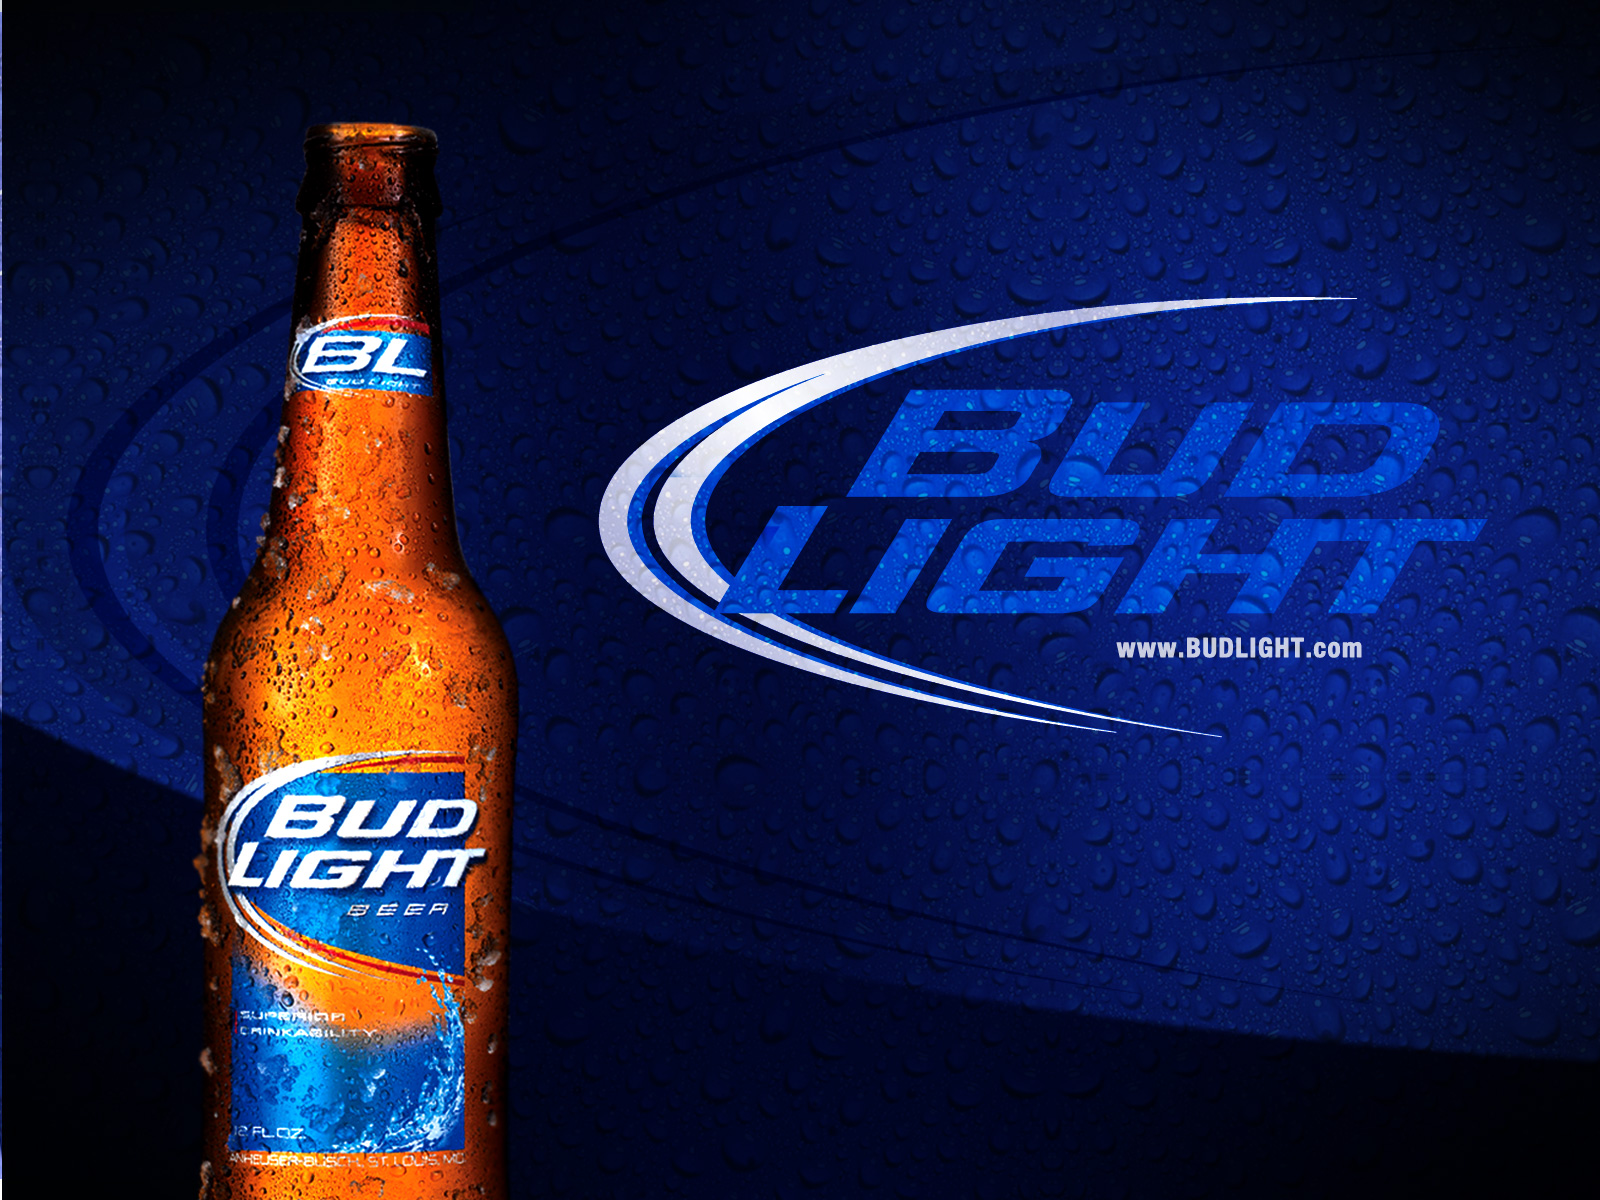 Related To Bud Light Present Real Men Of Genius Commercials 1600x1200